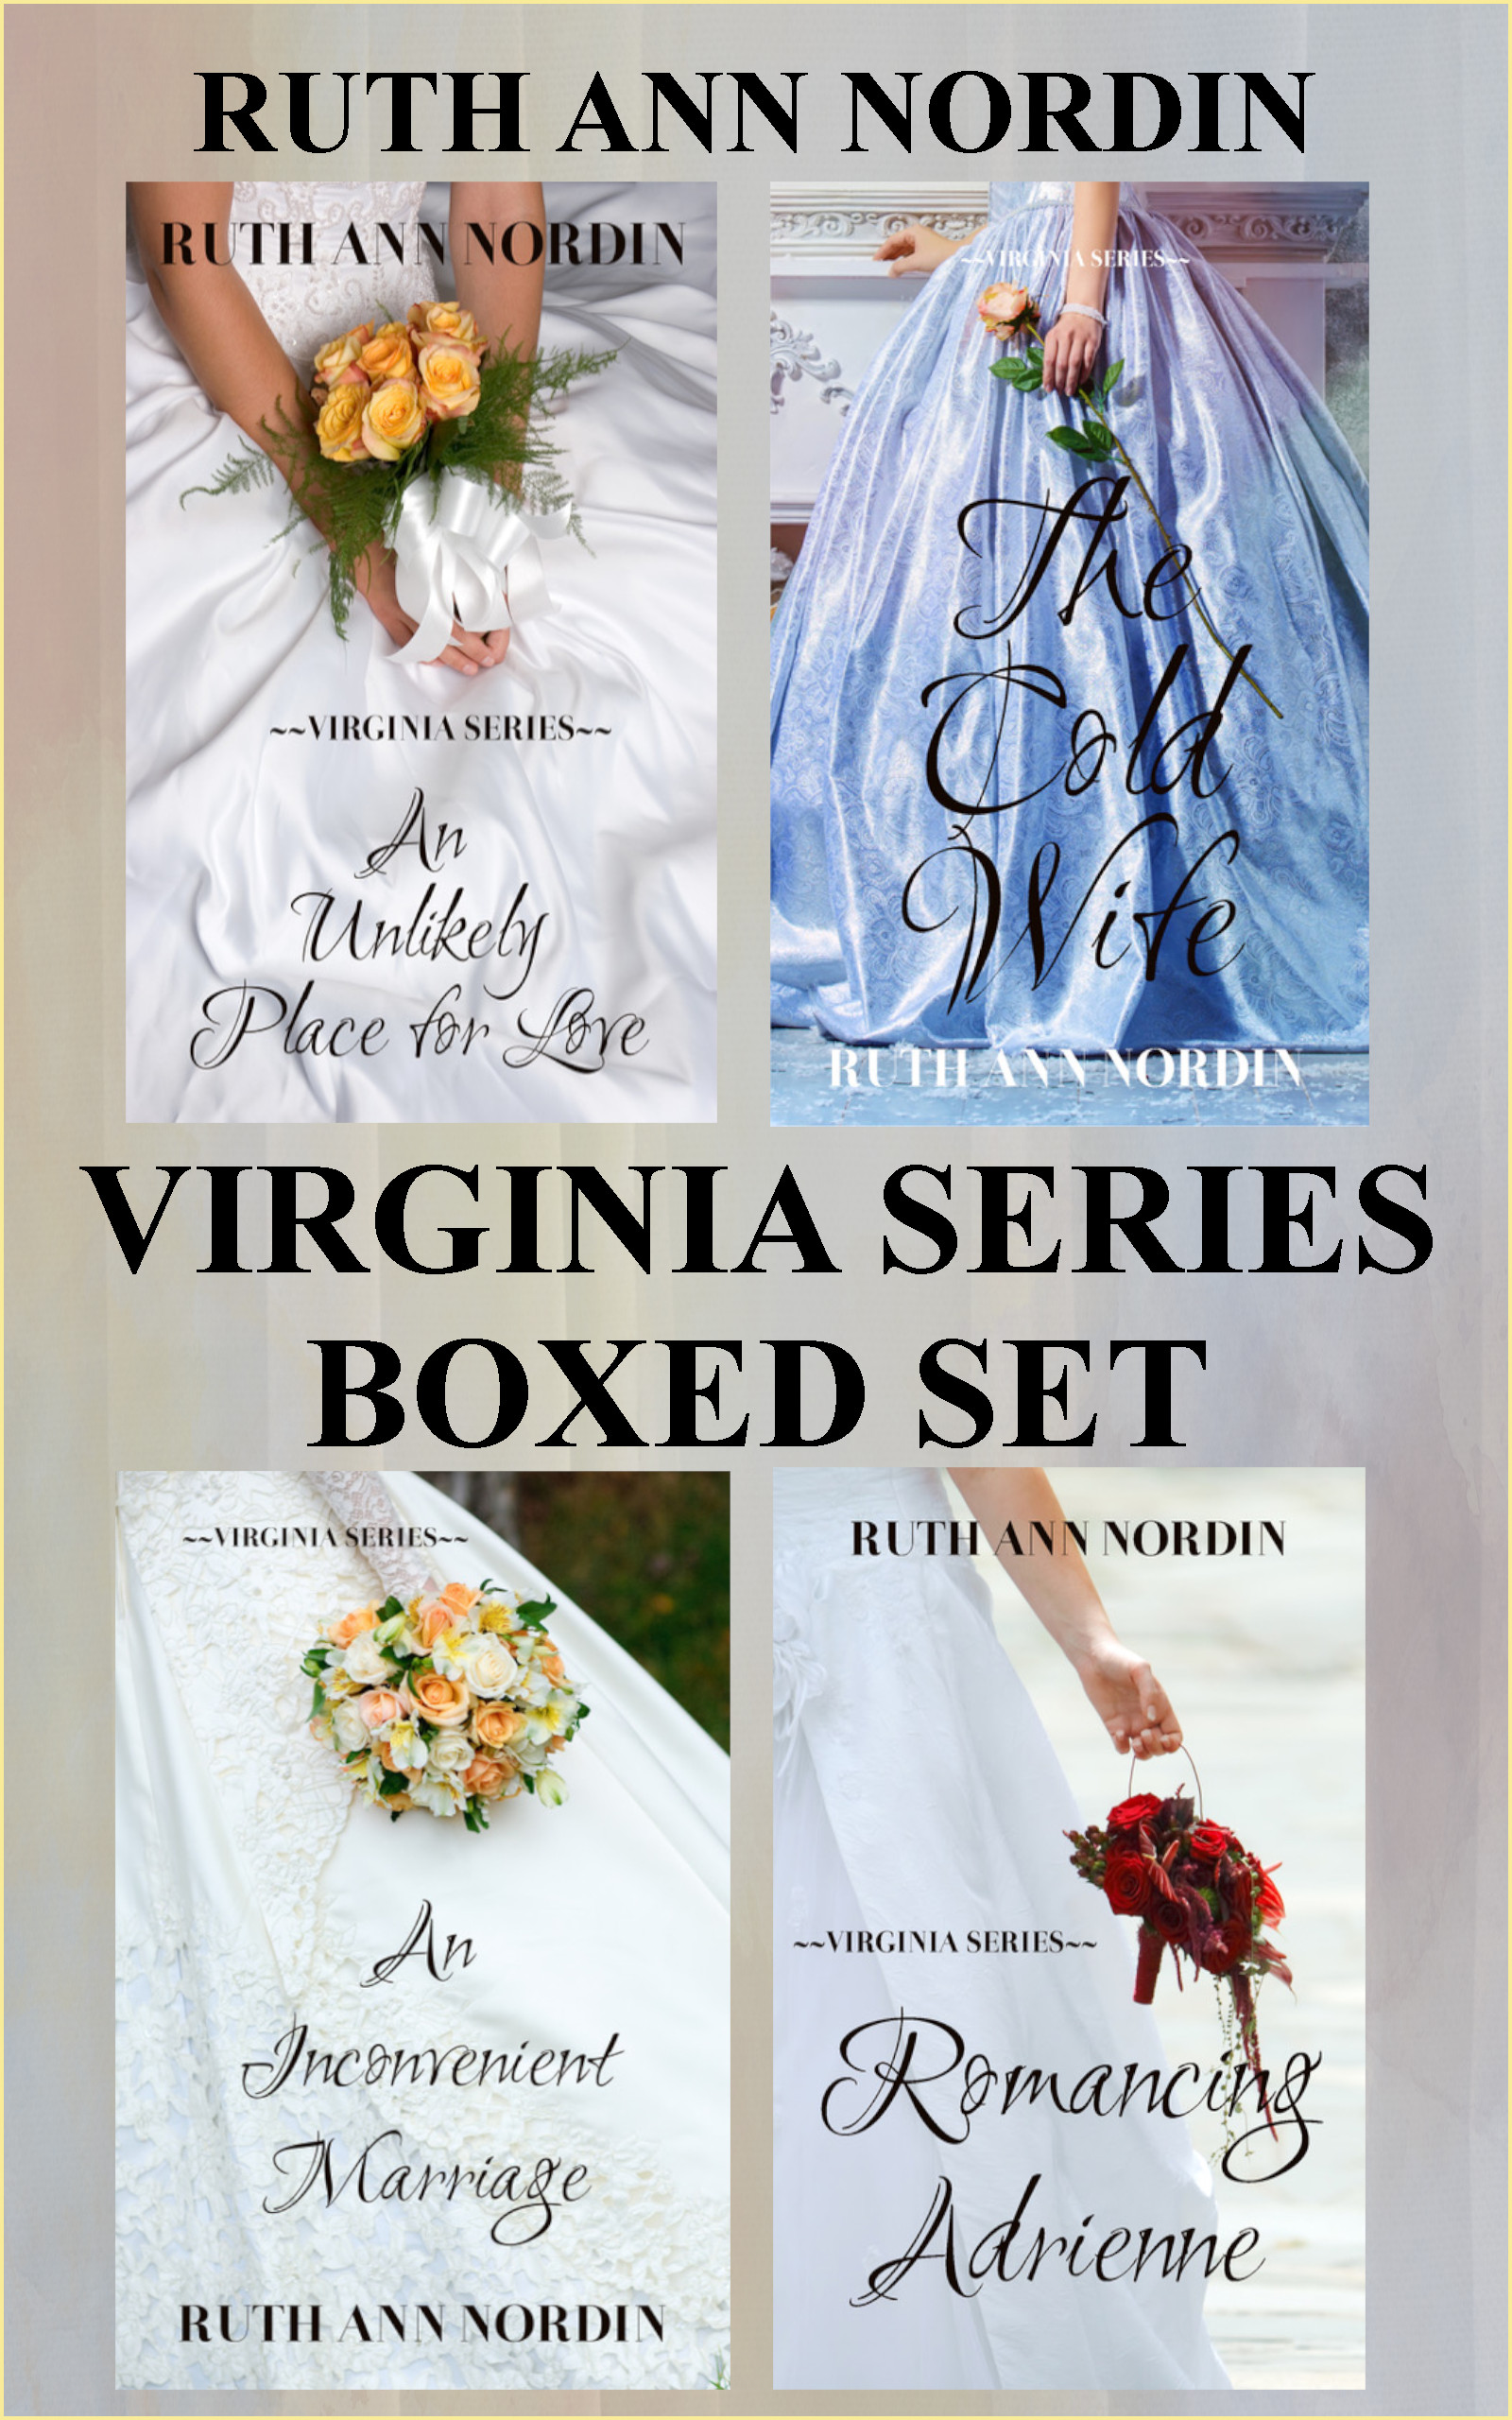 Virginia Series Boxed Set flat ebook cover